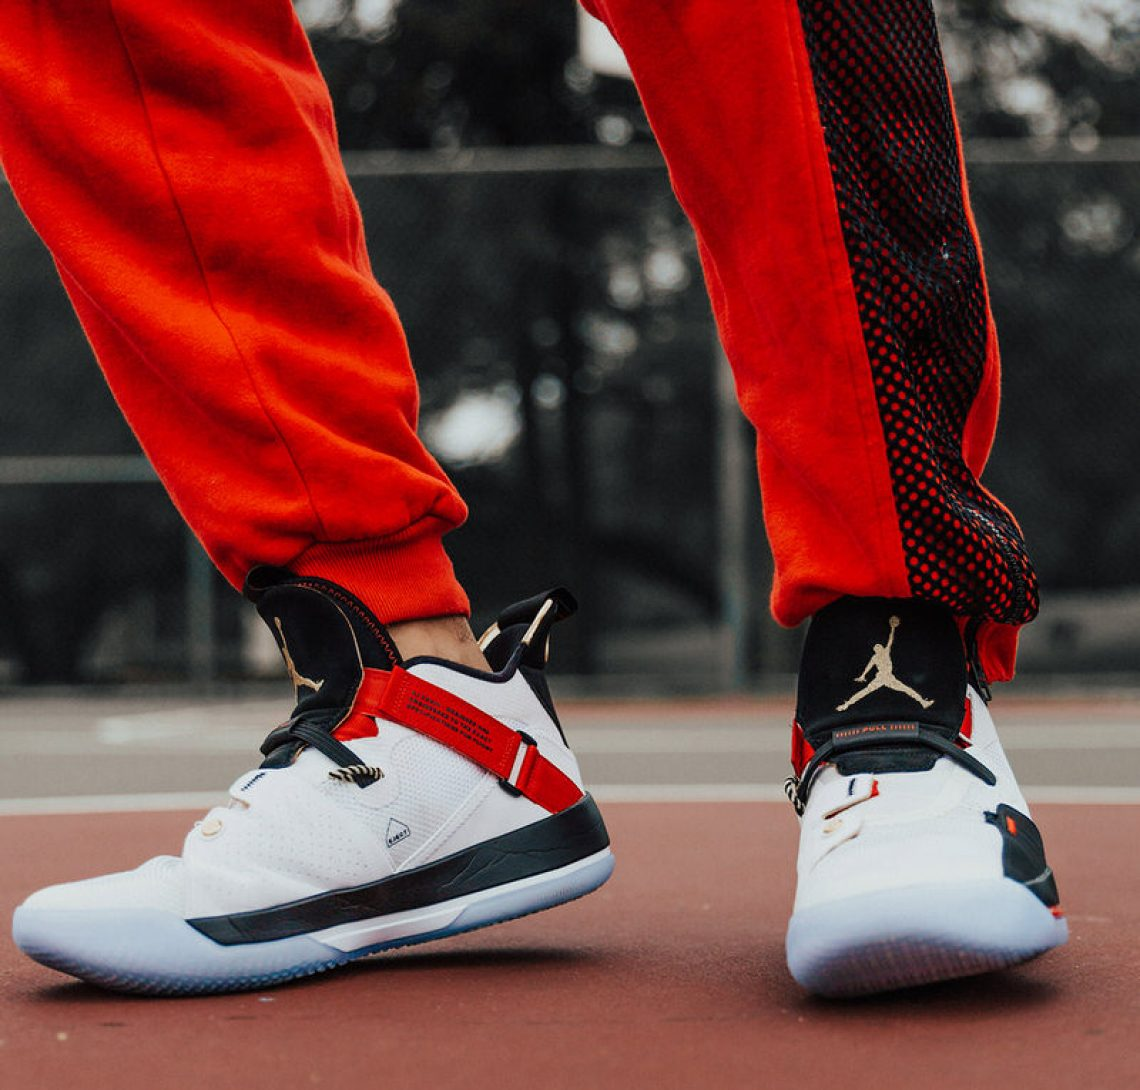 1cb710196620bf Styling the shoe with OG Nike Air Jordan Flight sweats circa  89 and the  famous Playground tee retro from the turn of the century